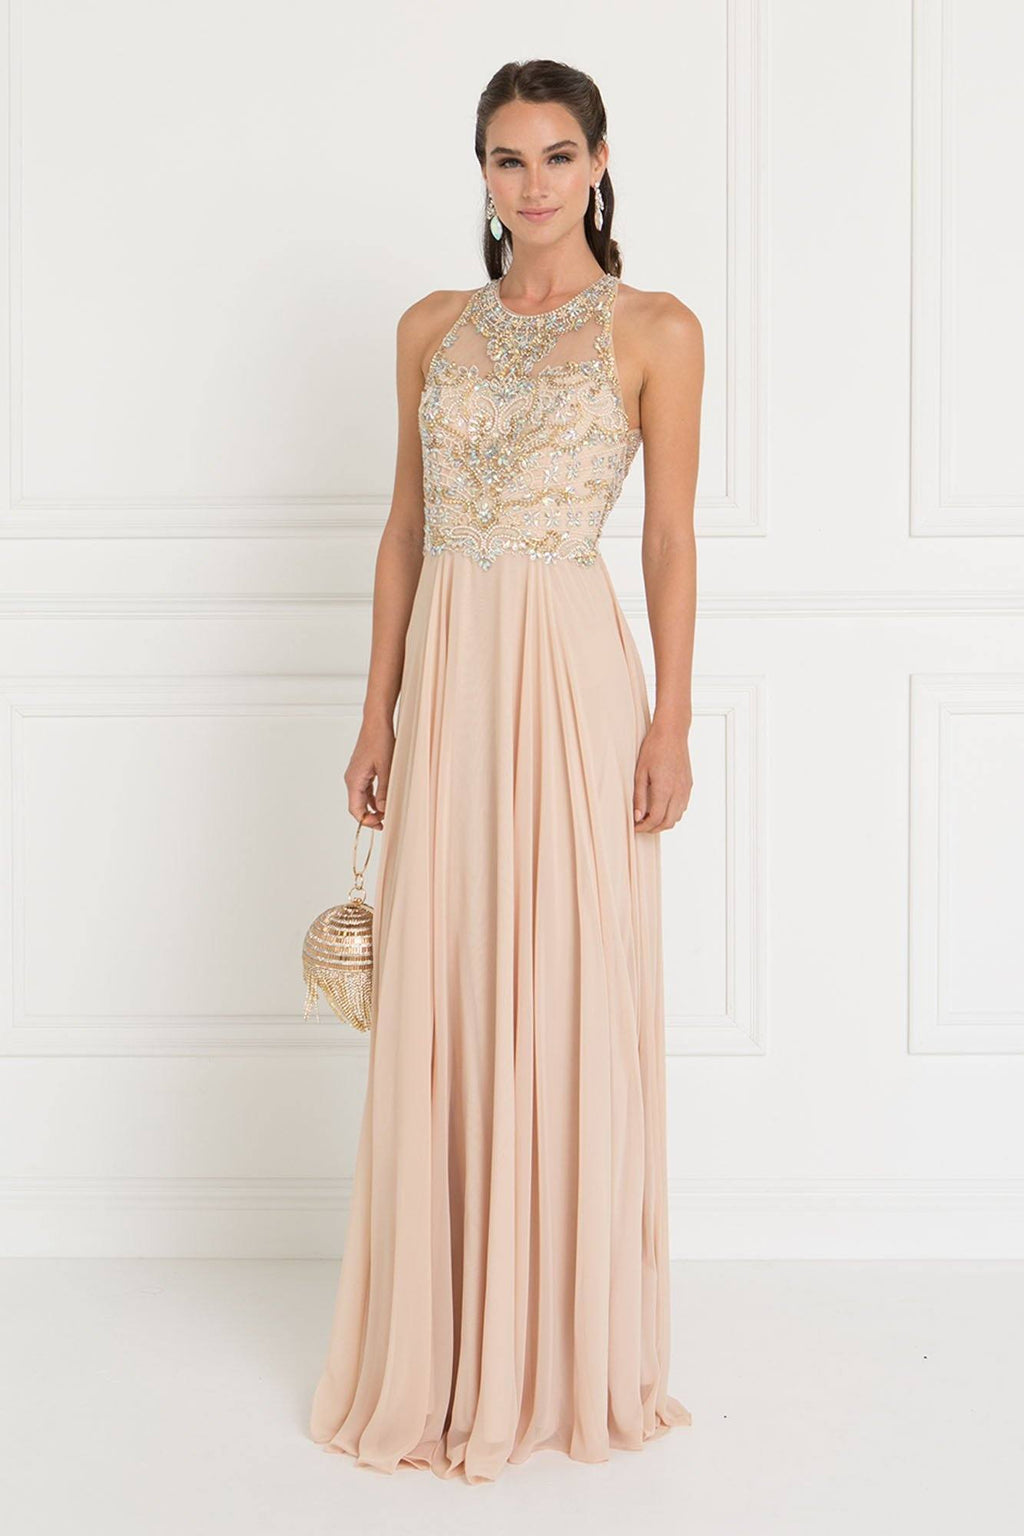 Sheer illusion champagne prom dress GLS 1564-Simply Fab Dress